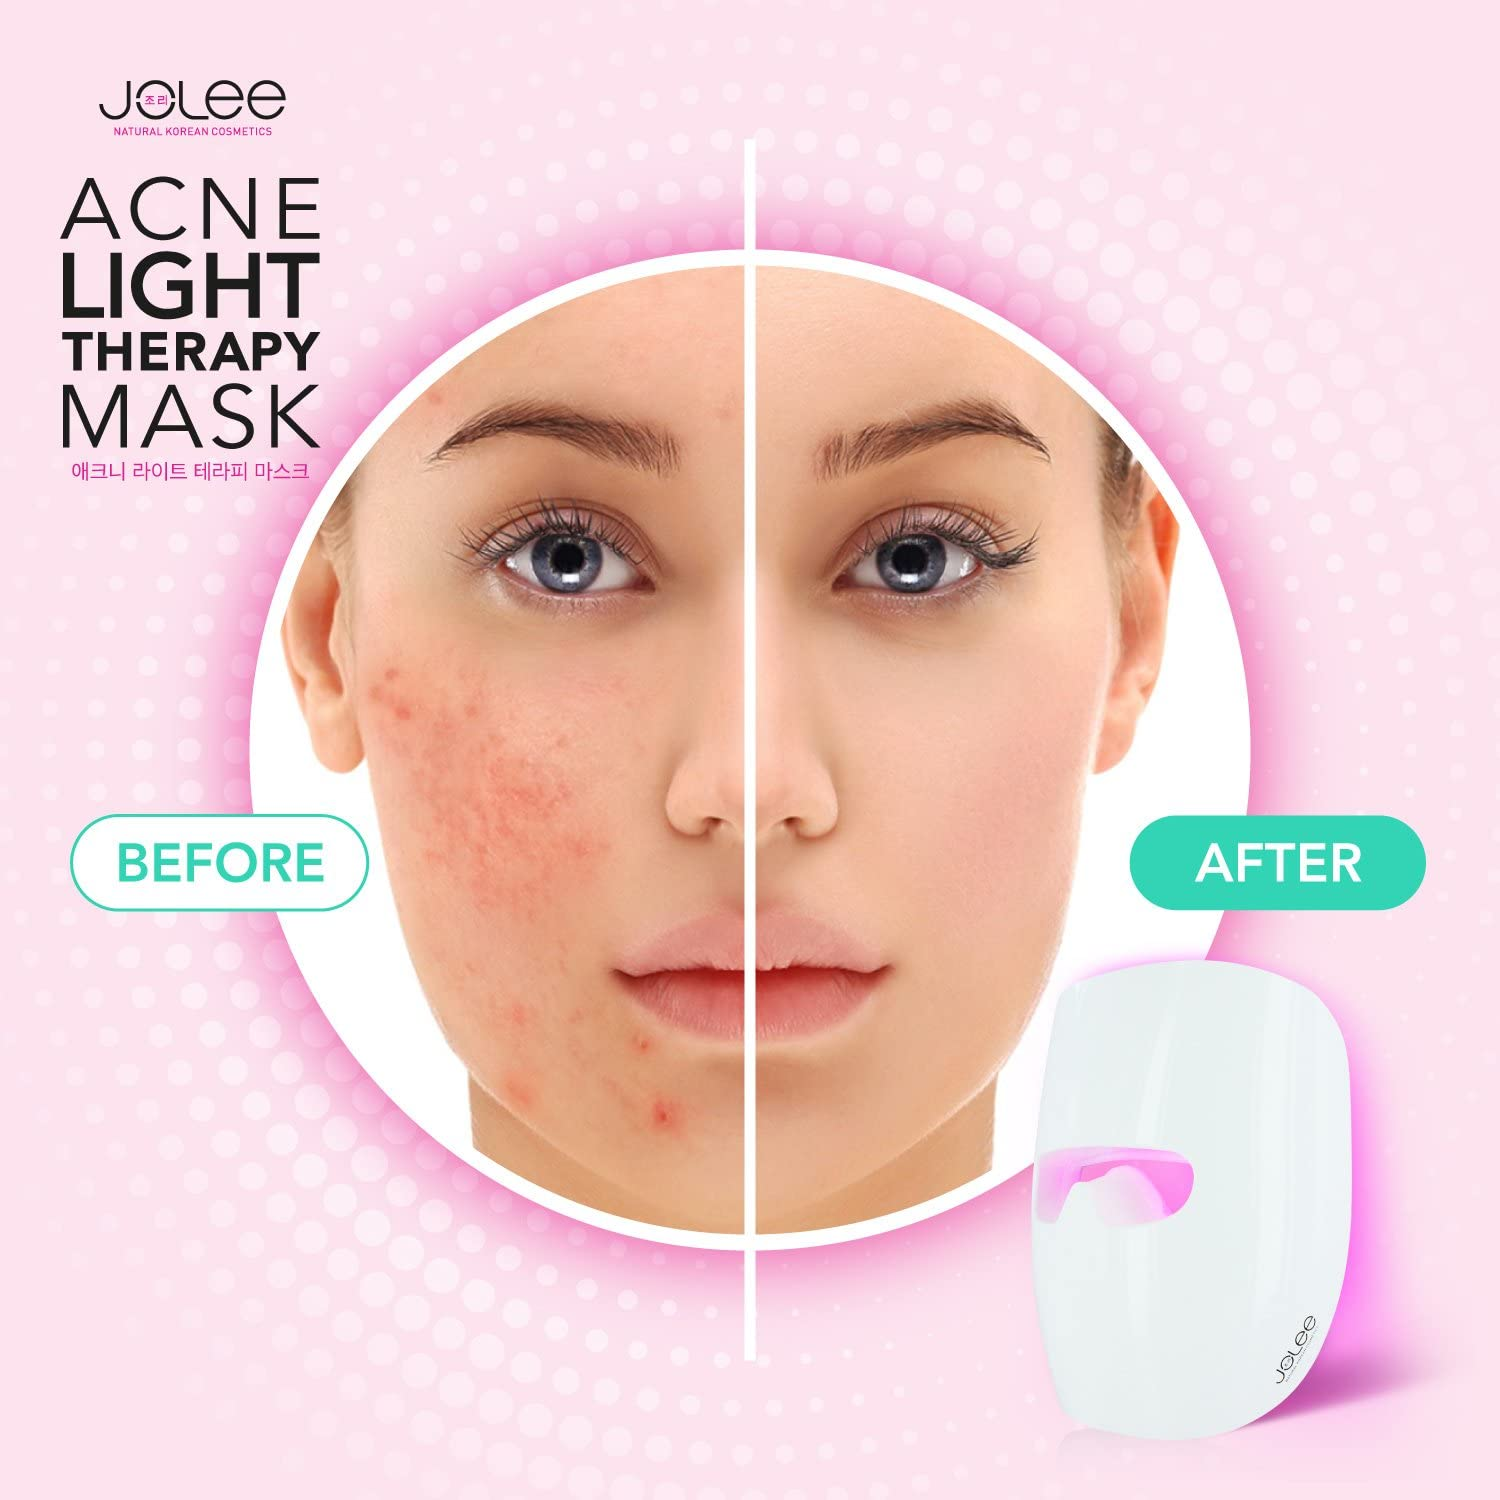 Jolee Led Acne Light Therapy Acne Mask Unlimited Sessions For Treatment Of Mild To Moderate Acne Spots Blackhead Skin Blemishes Clinically